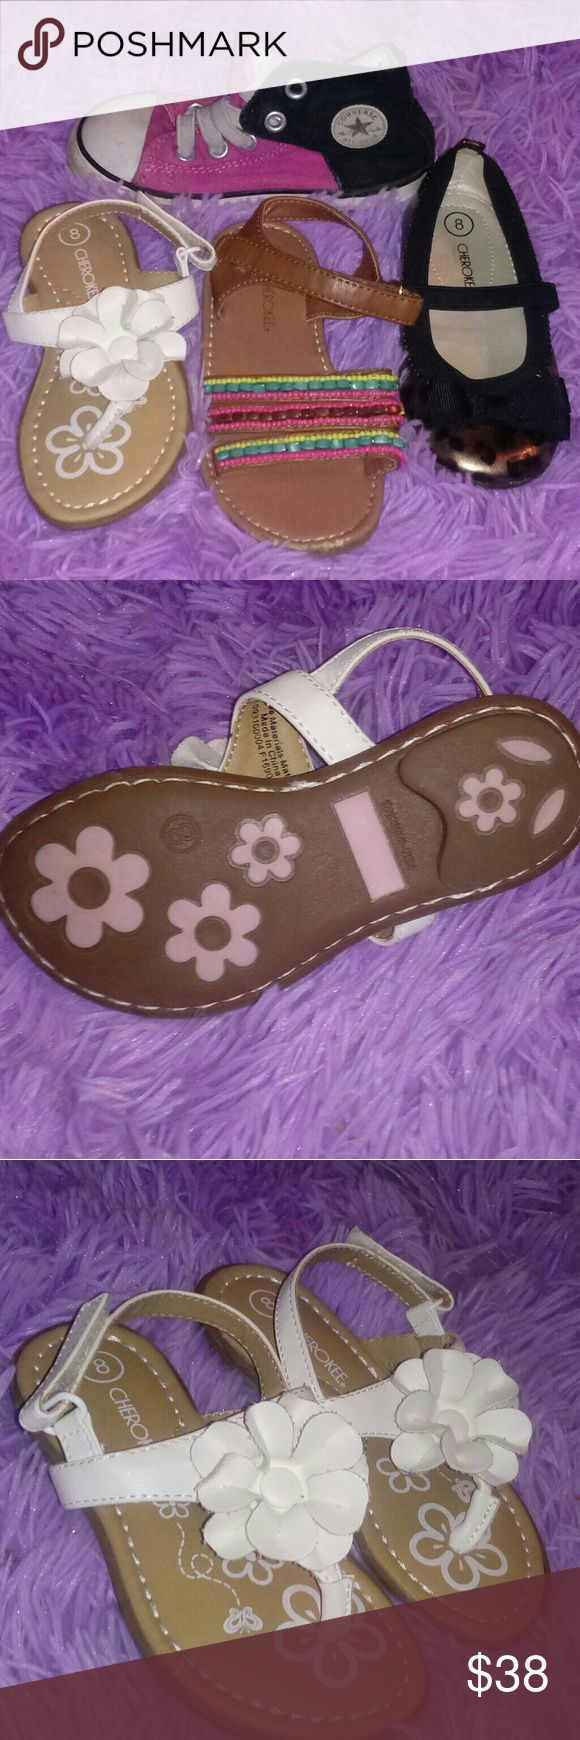 BUNDLE! GIRLS SUMMER SHOES SIZE 8 TODDLER! Bundle of 4 pairs of toddler girl footwear! ALL SIZE 8 1 leopard pair of flats w bow, 1 white pair of strappy flower sandals, 1 hippie boho beaded pair of sandals, & 1 pair of slip on velcro side pink/black converse.  THE SANDALS/FLATS are barely worn! In great shape, might have one or two BARELY noticable marks. THE CONVERSE are well worn! Still very wearable but have good bit of scuff marks/fading present. Let them get messy, great play shoes for…